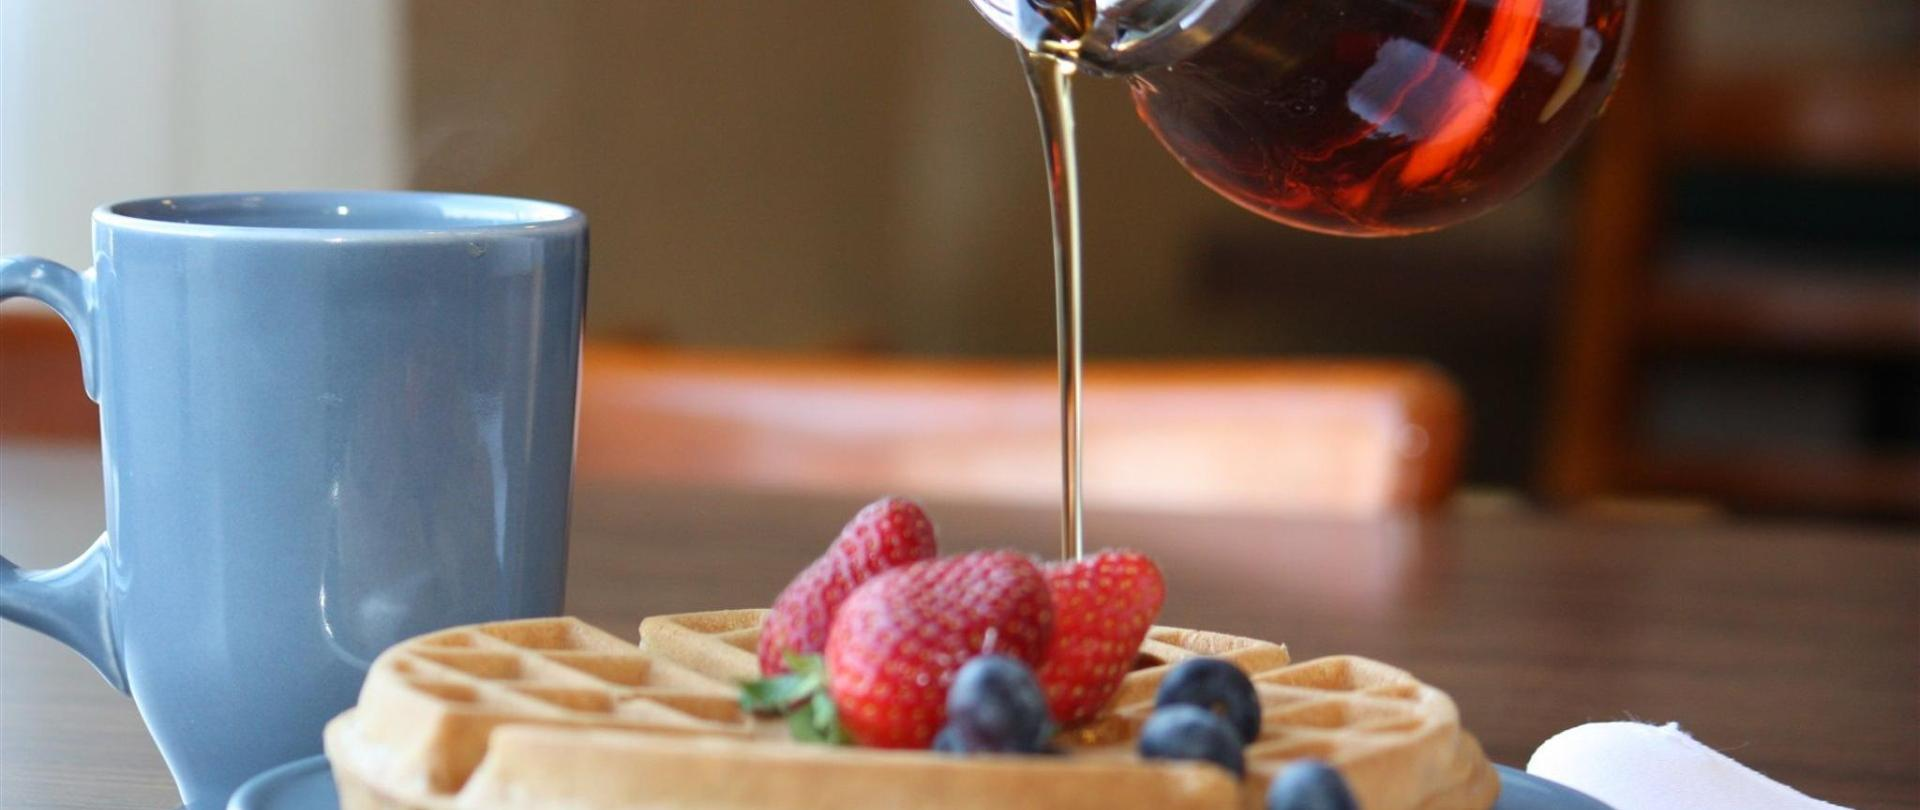 59747608_delicious_waffles_with_syrup_-5.jpg